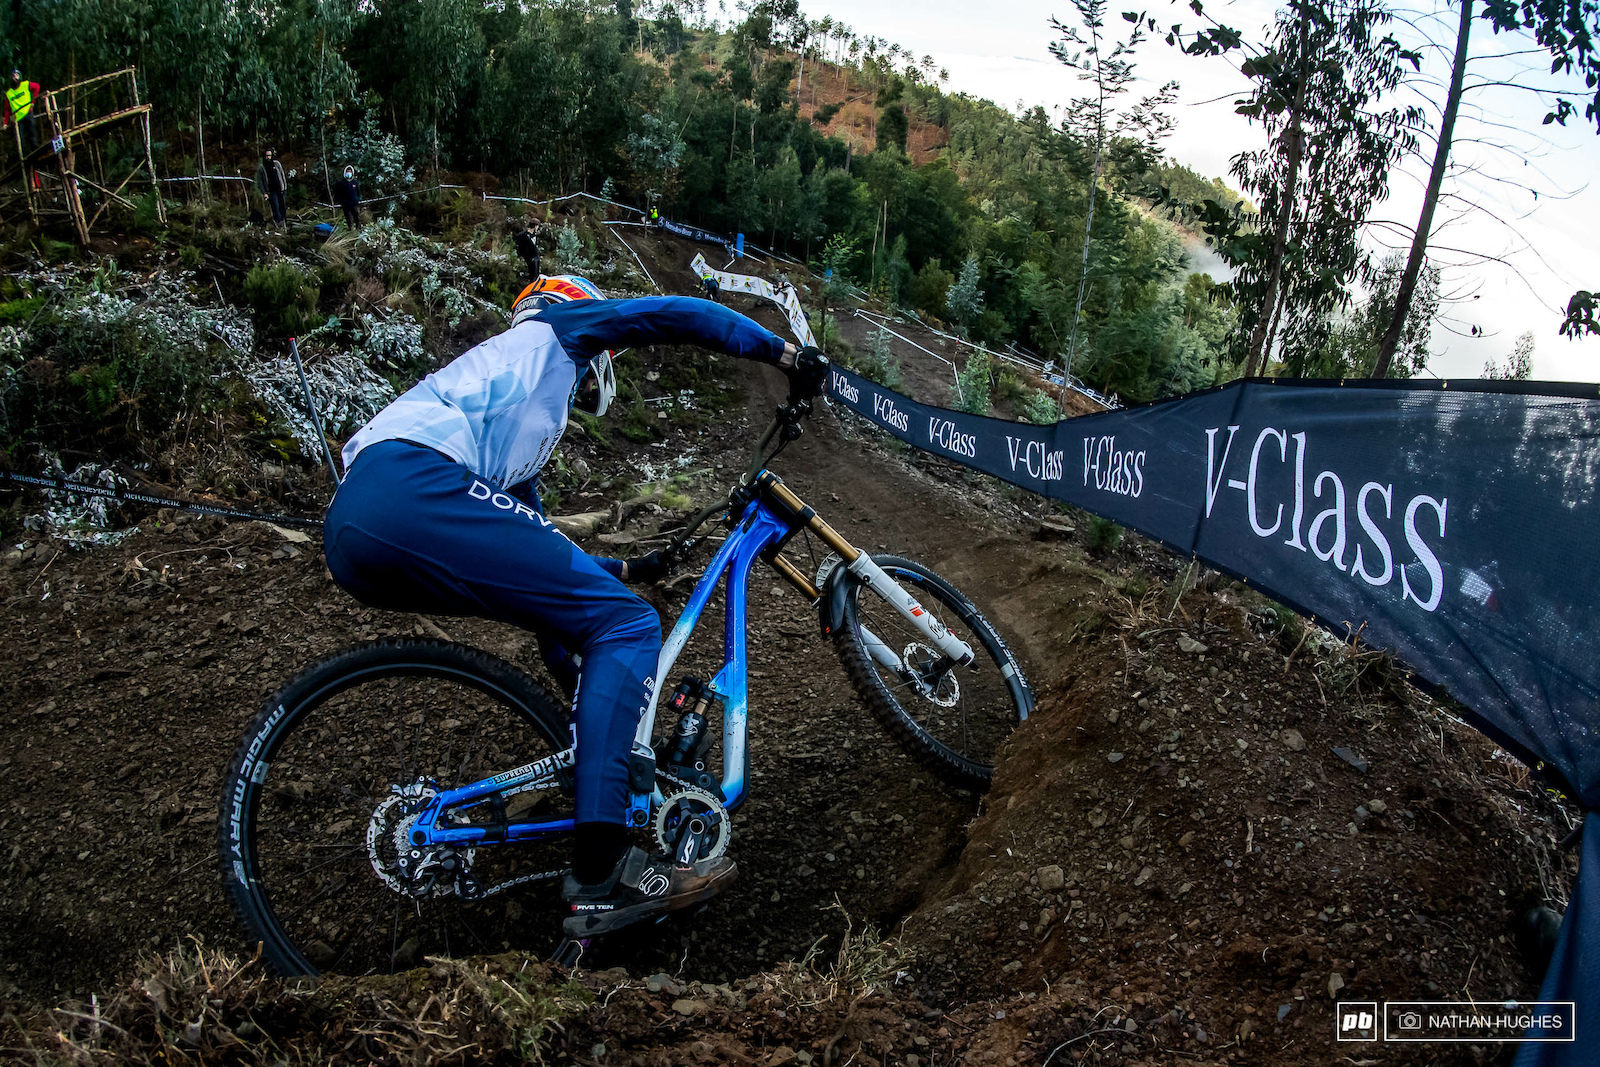 Baptiste Pierron looking good and going hard on the bike as we ve come to expect.